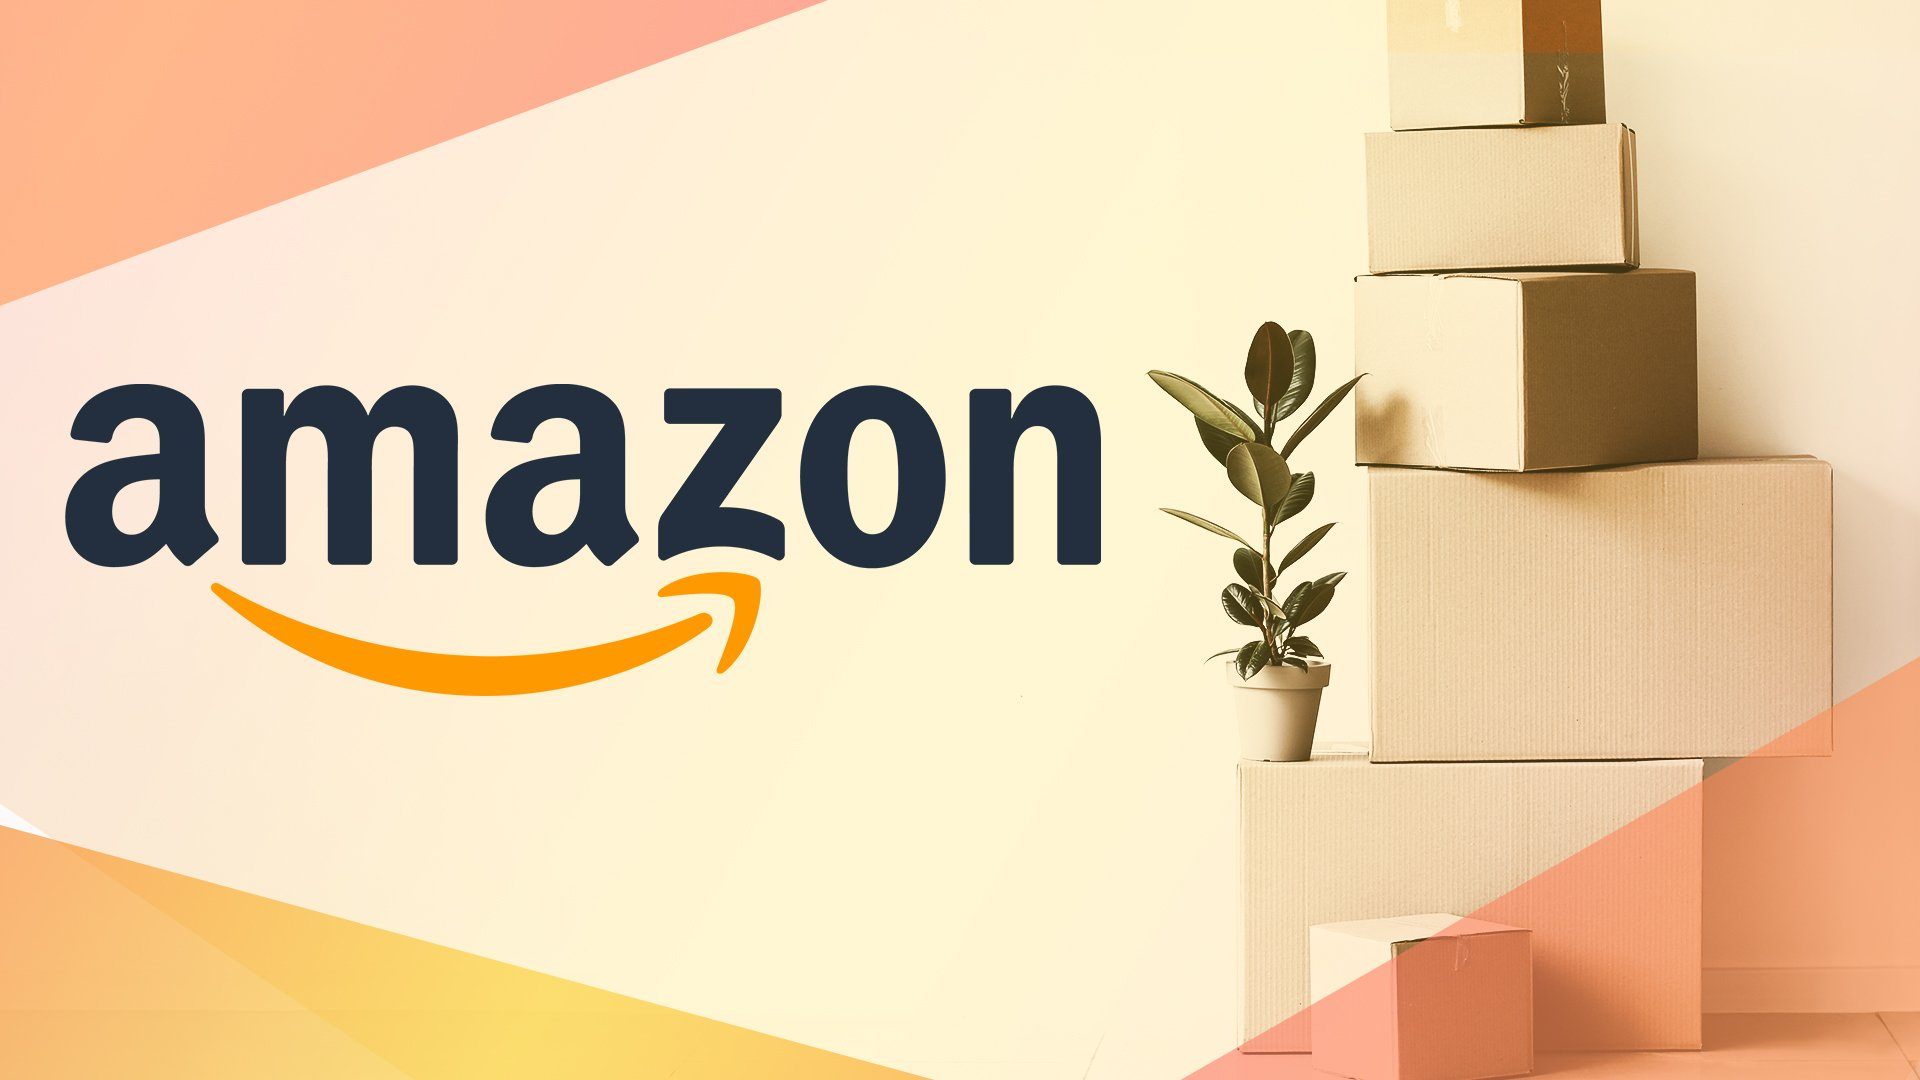 Amazon, E-Commerce, shopping, Paket, Amazon Logo, Box, Paketdienst, Paketzusteller, Home Shopping